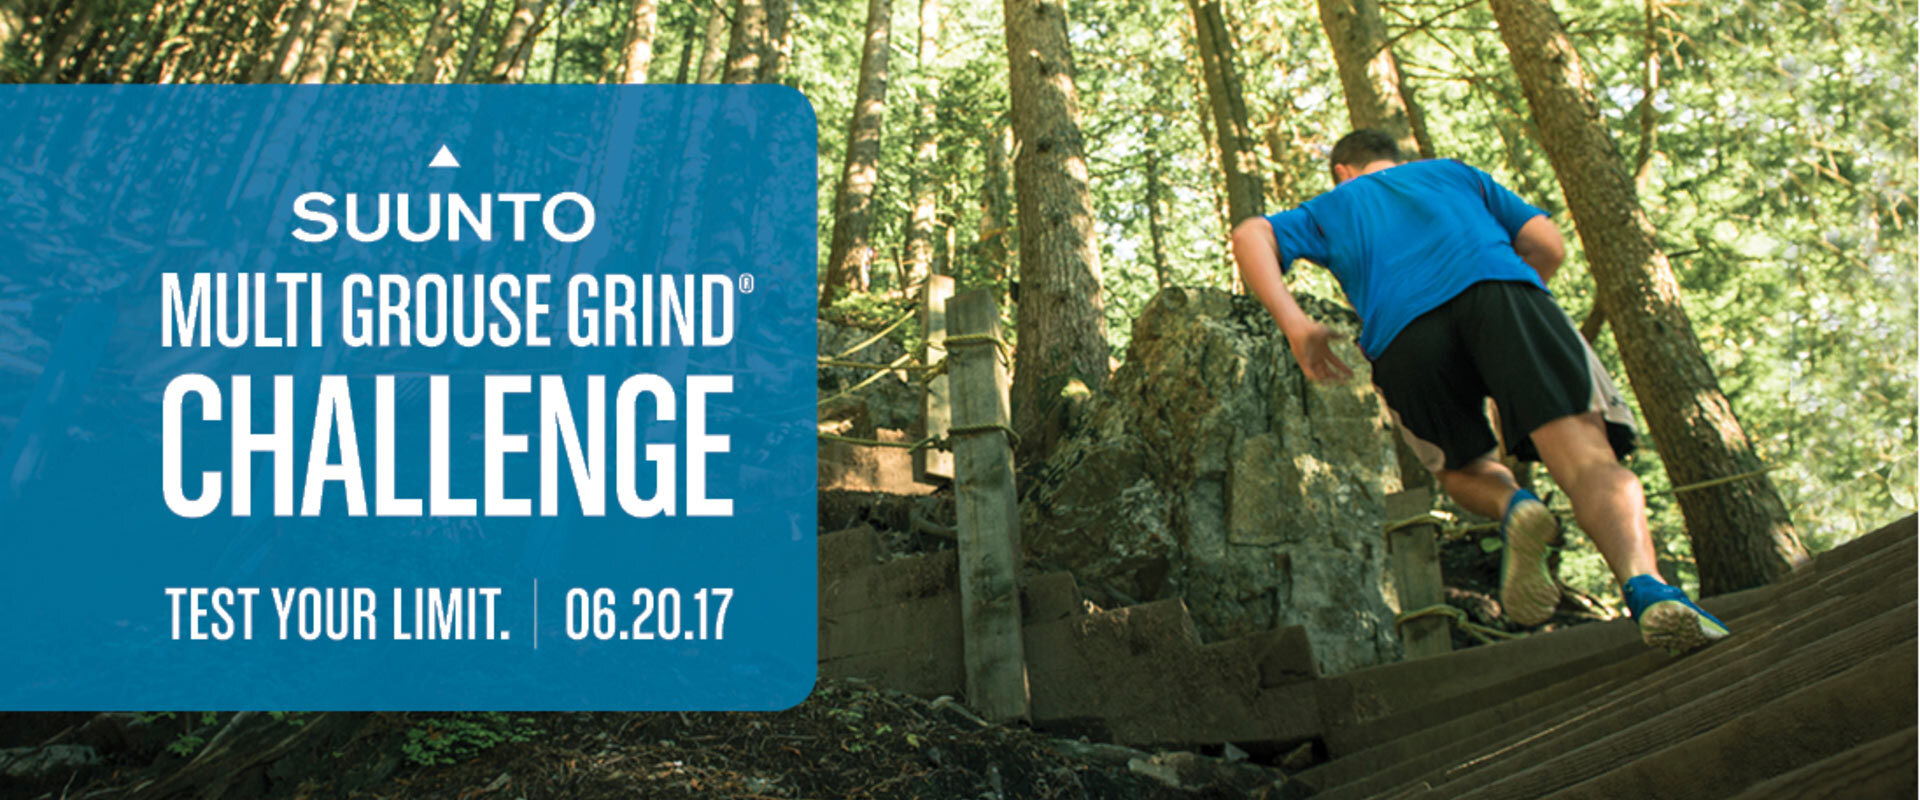 From sunrise to sundown, the Multi-Grouse Grind Challenge is back